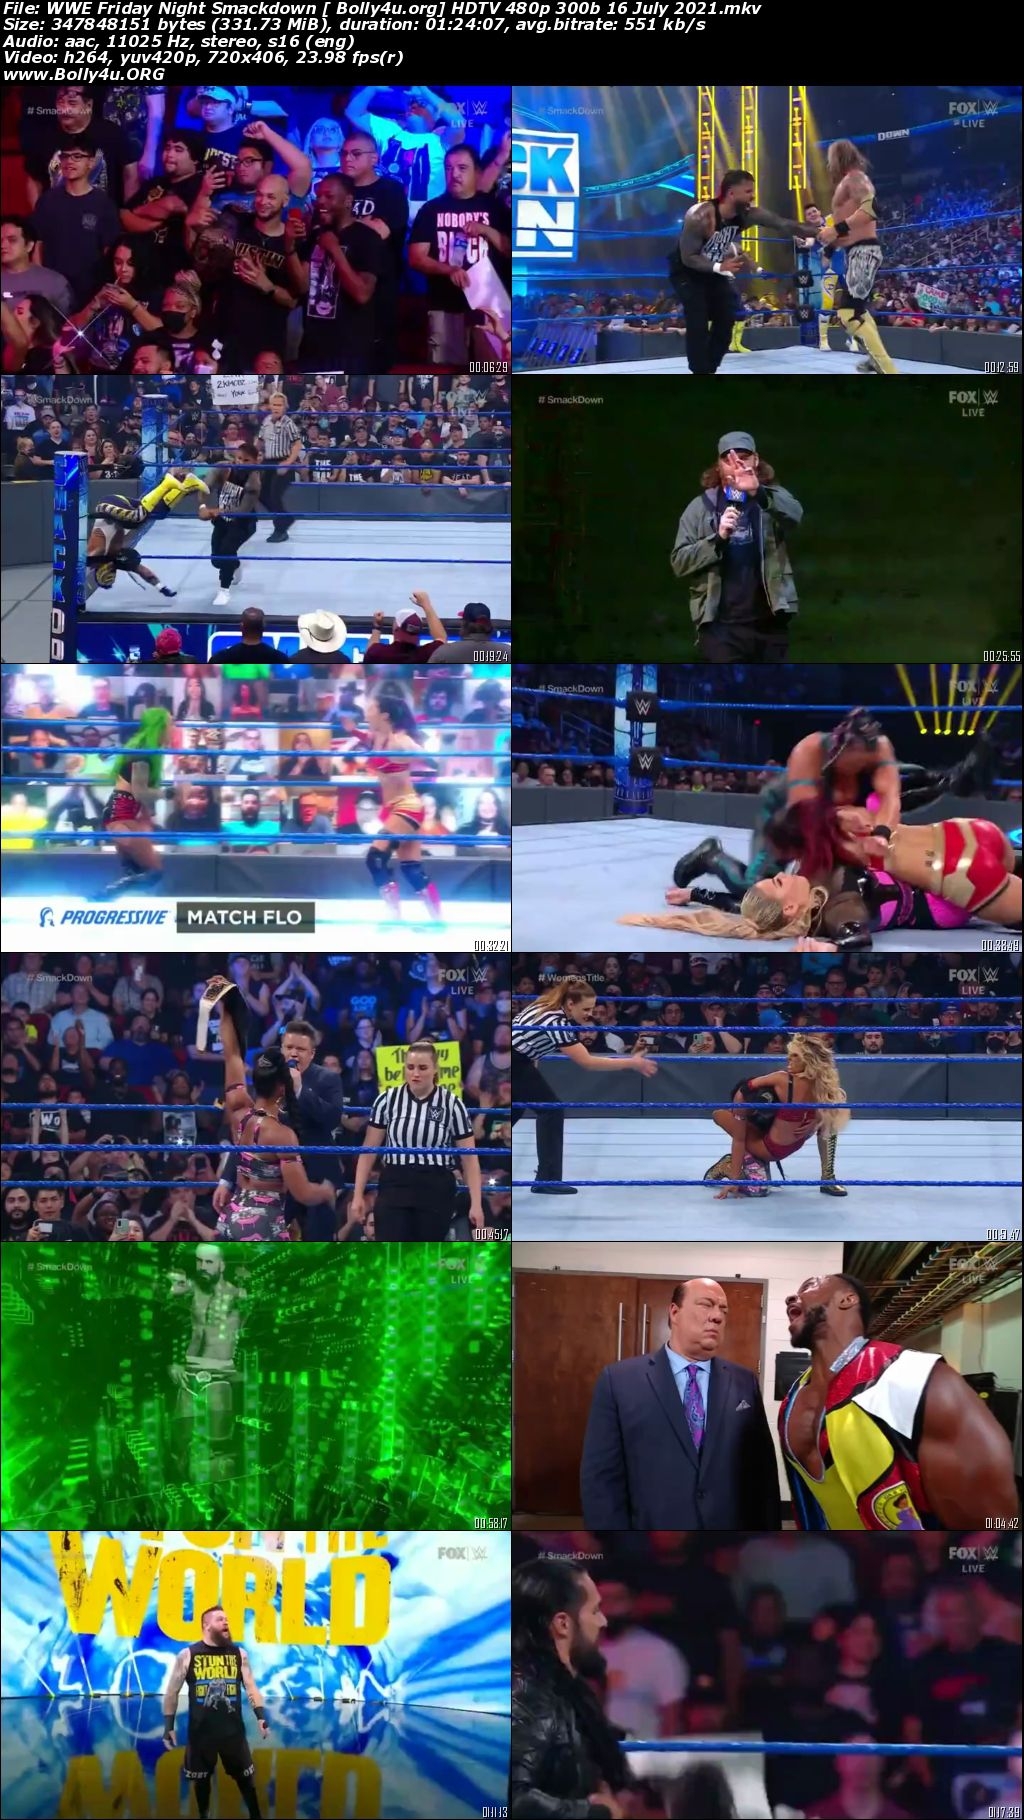 WWE Friday Night Smackdown HDTV 480p 300b 16 July 2021 Download